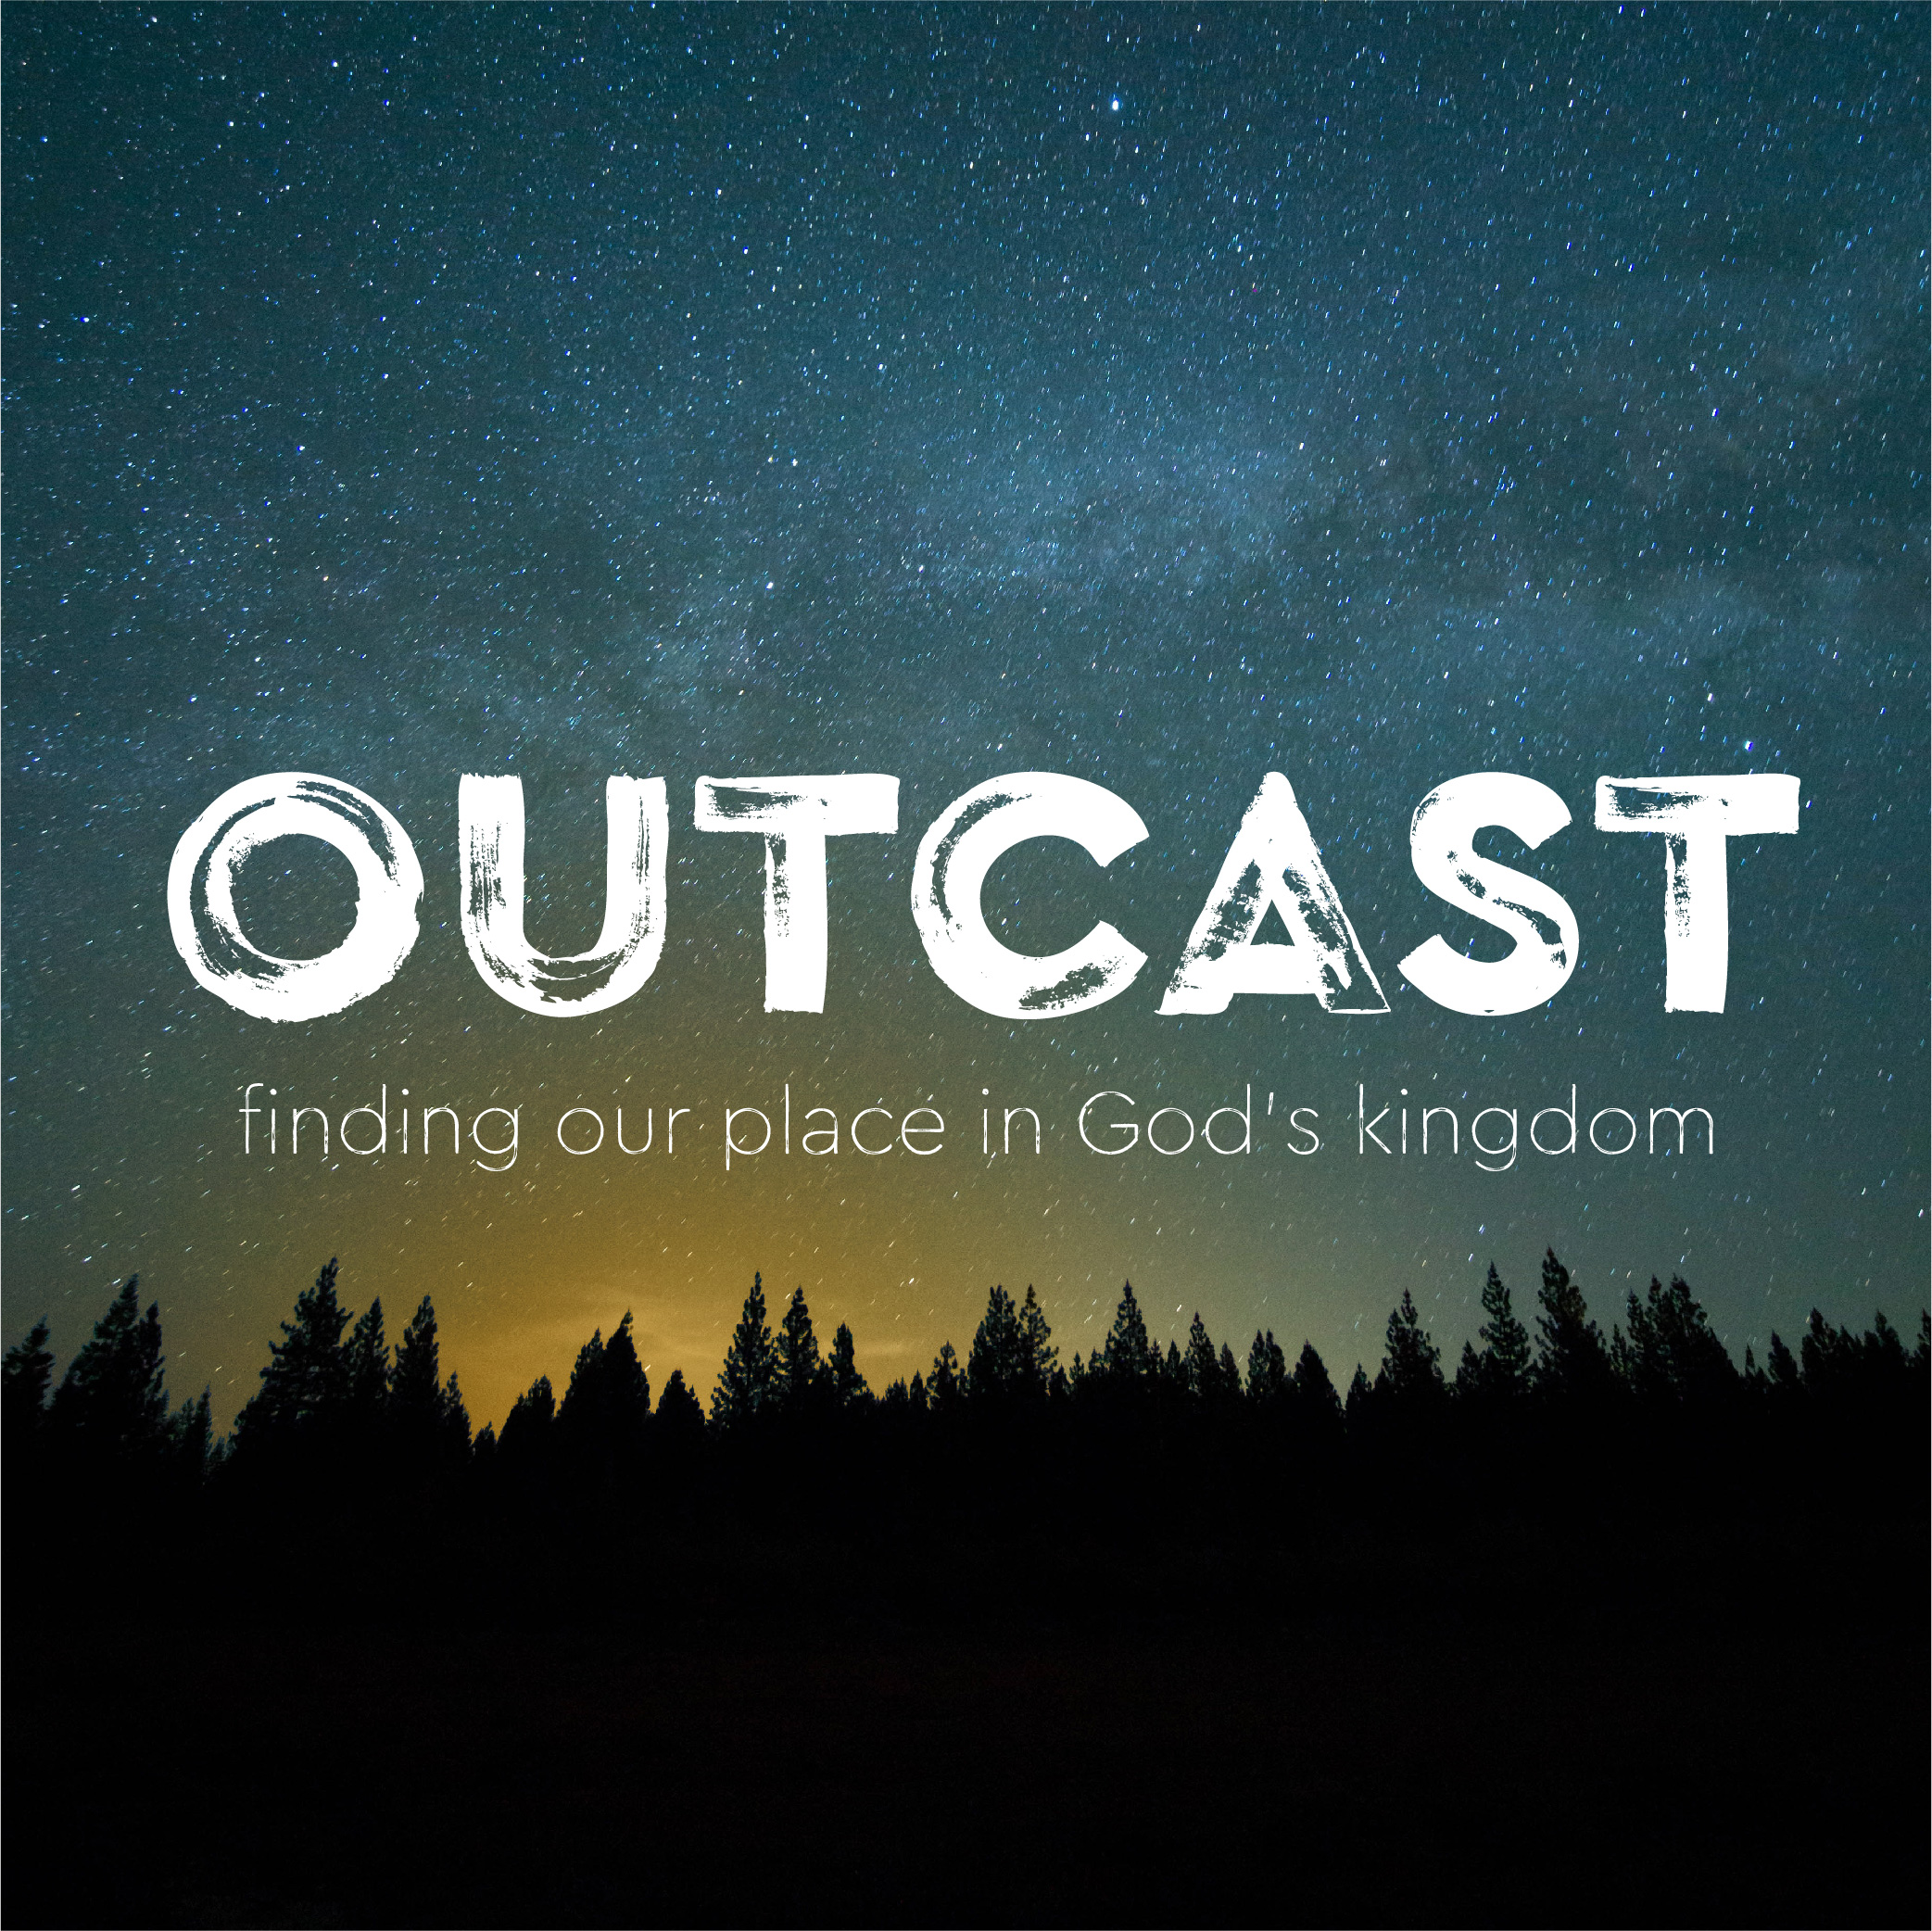 OUTCAST_Instagram-01-1.jpg